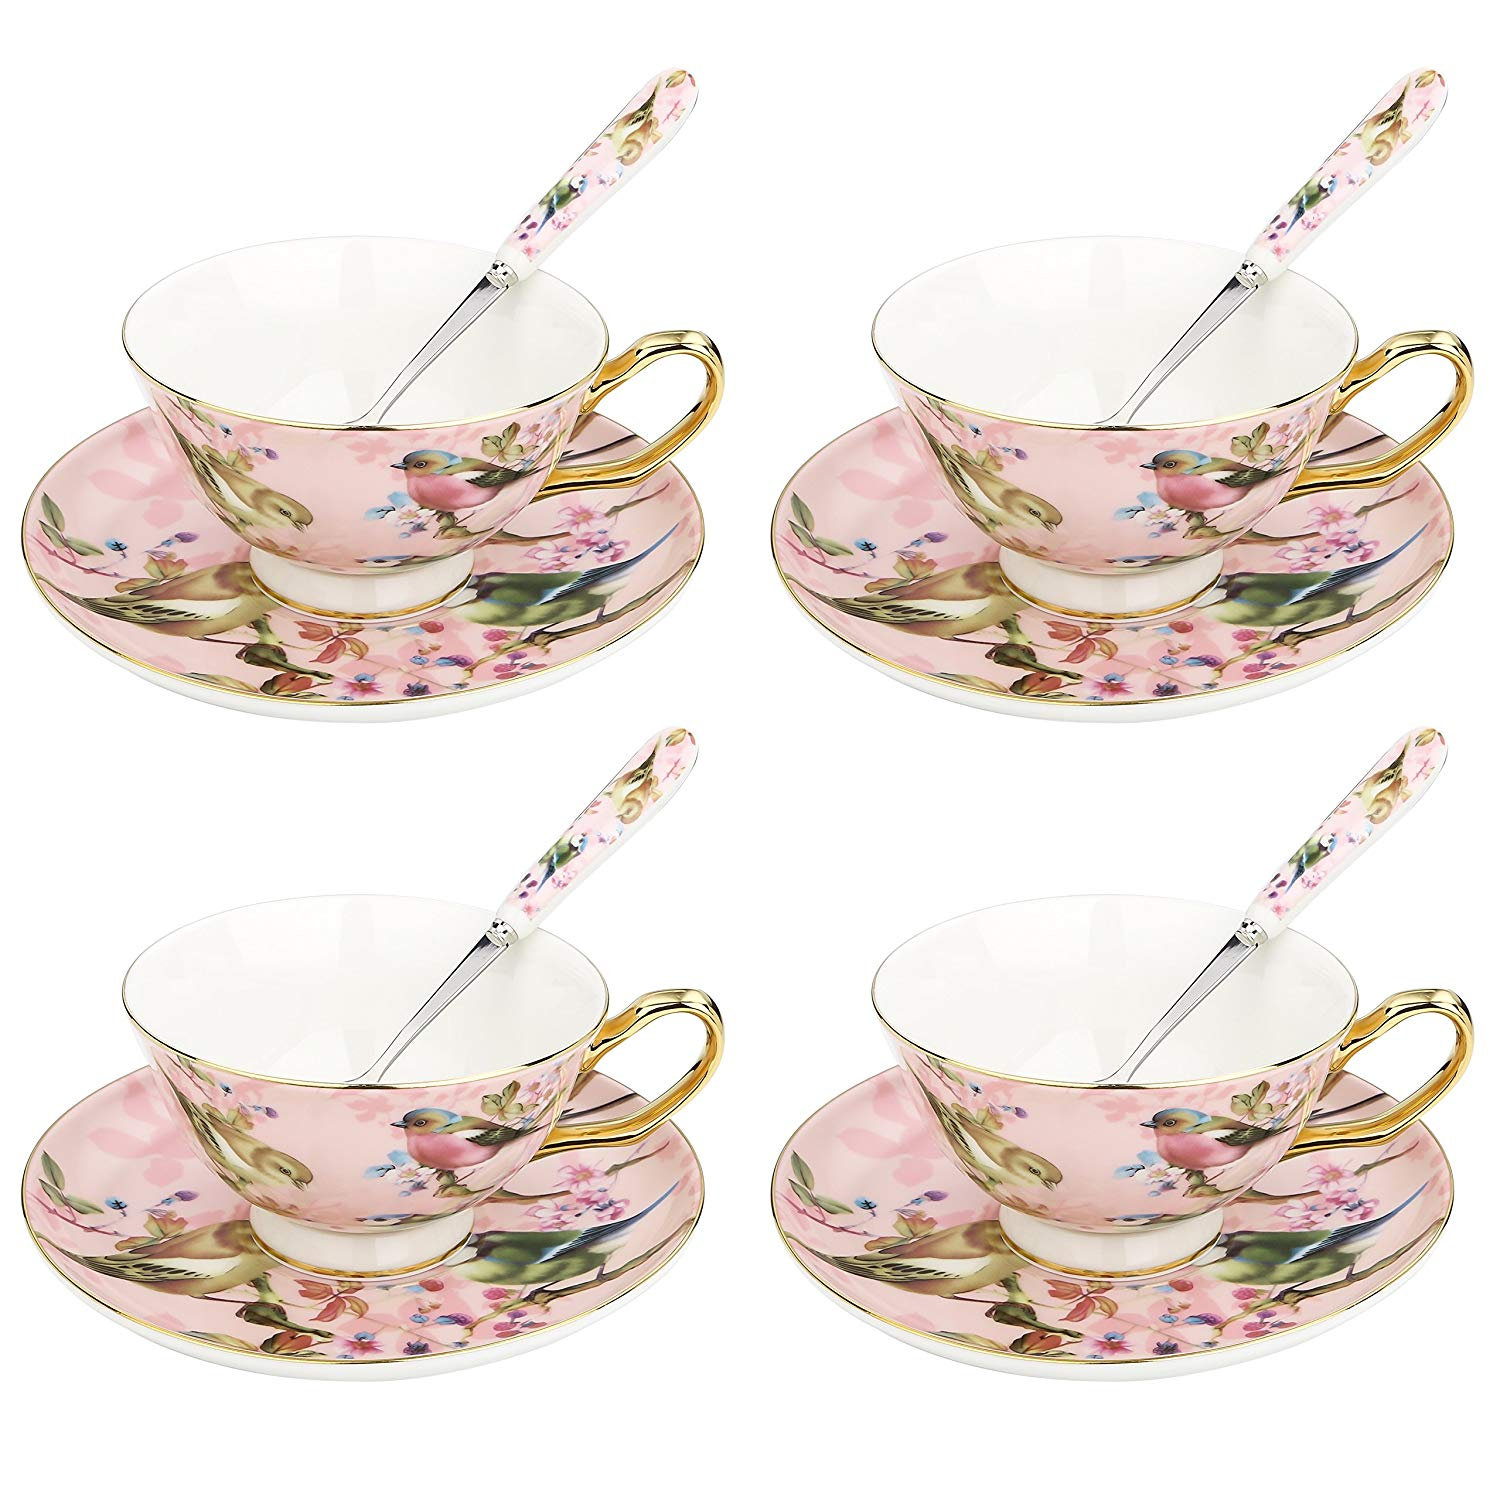 ARTVIGOR Coffee Cup Serving Set New Bone China Gold Rimmed 6.8oz / 200ml Coffee Cup&Saucer Gift Sets With Spoon For 4person